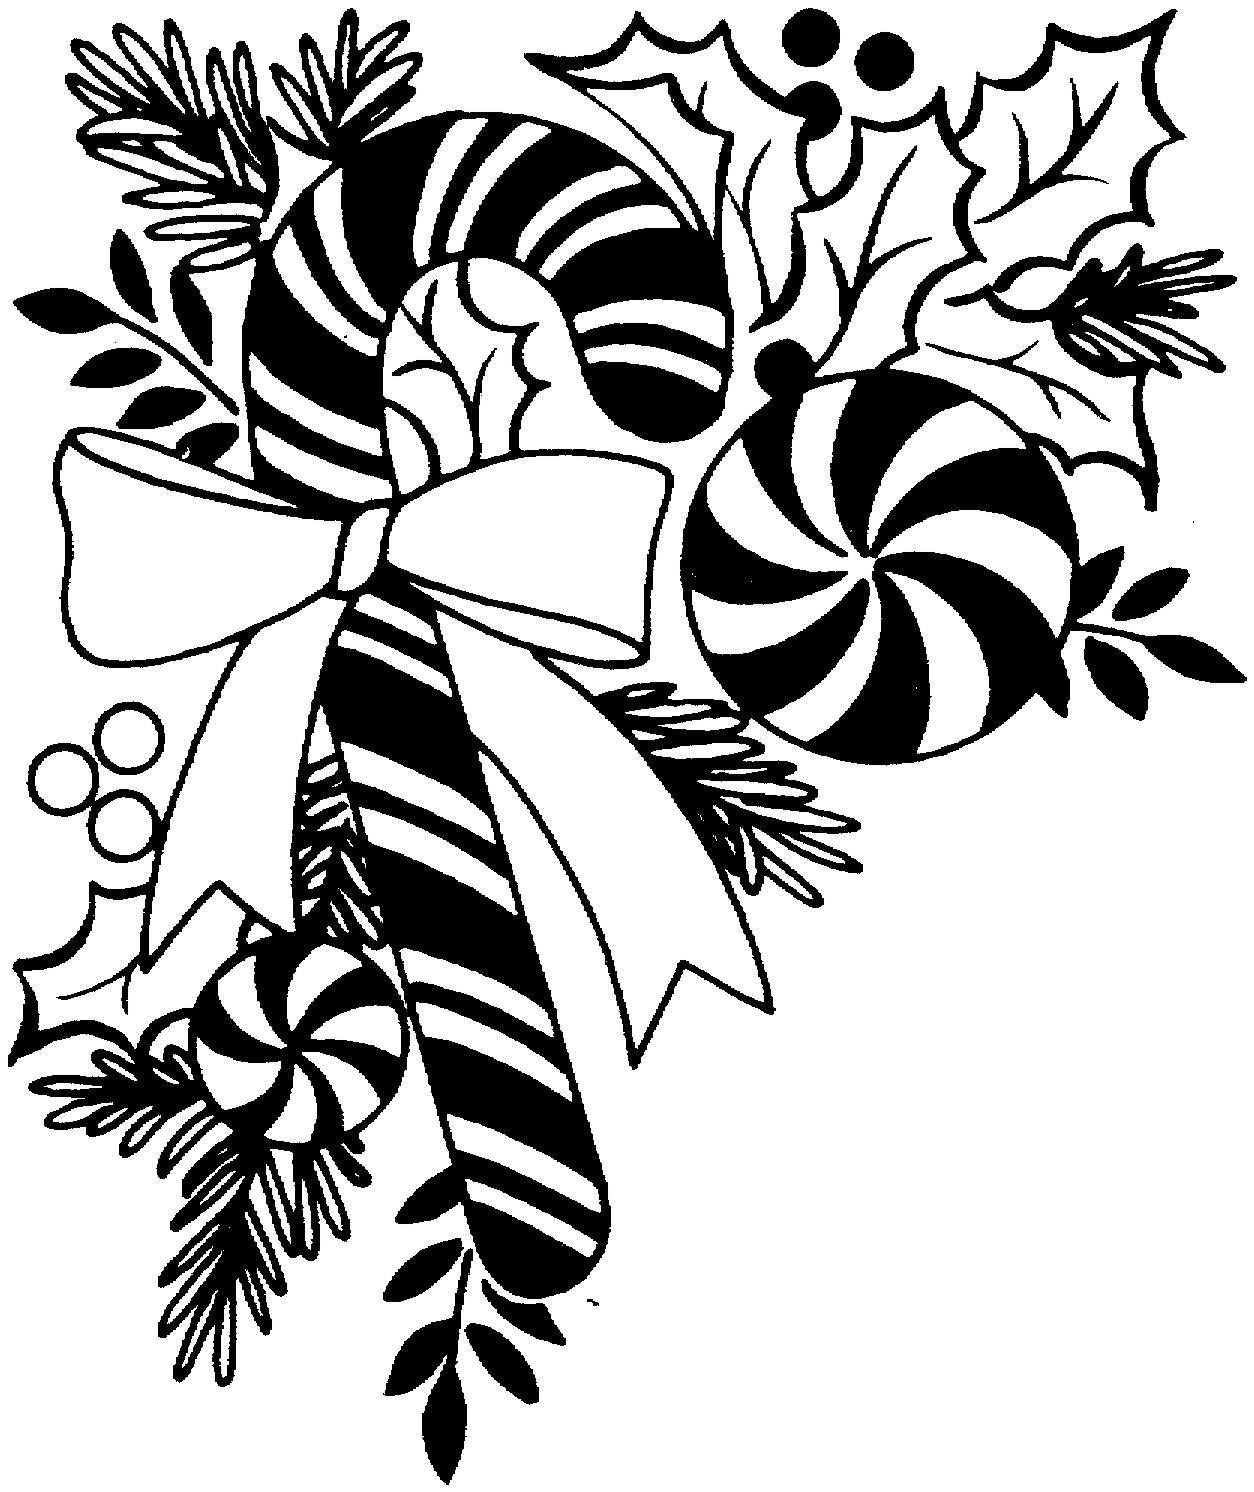 christmas borders black and white clipart - Clipground